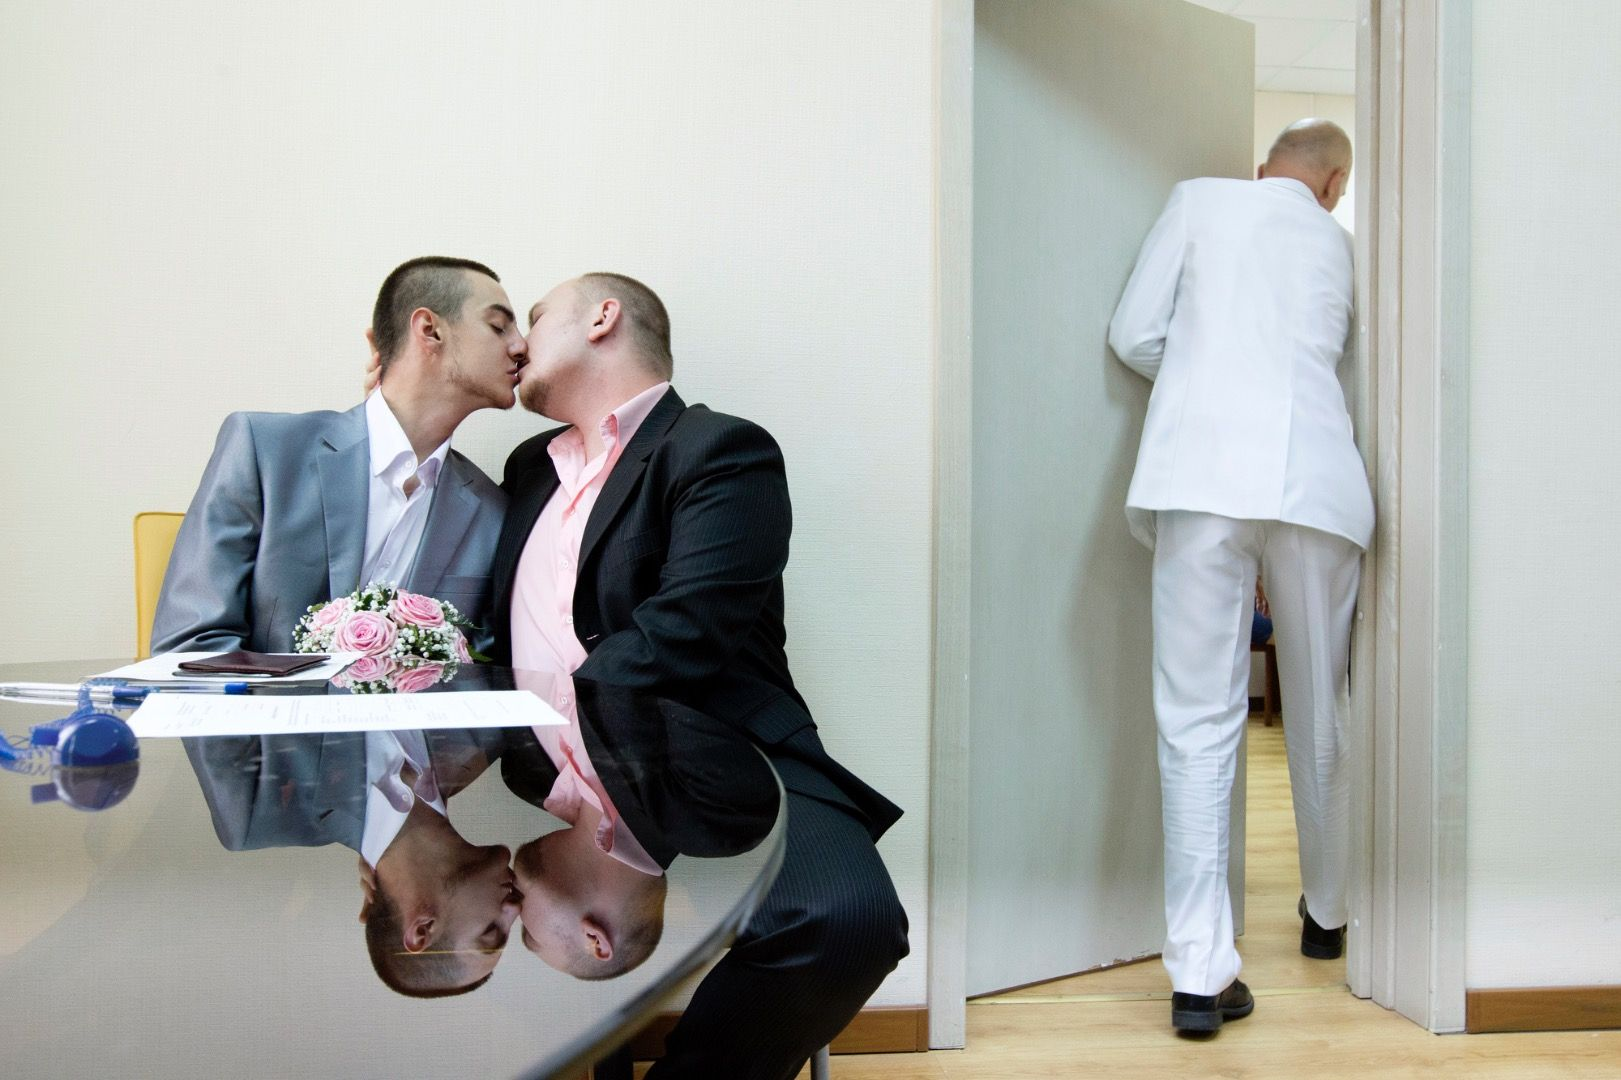 Homophobia in Russia: Featuring the World Press Photo of the Year 2015